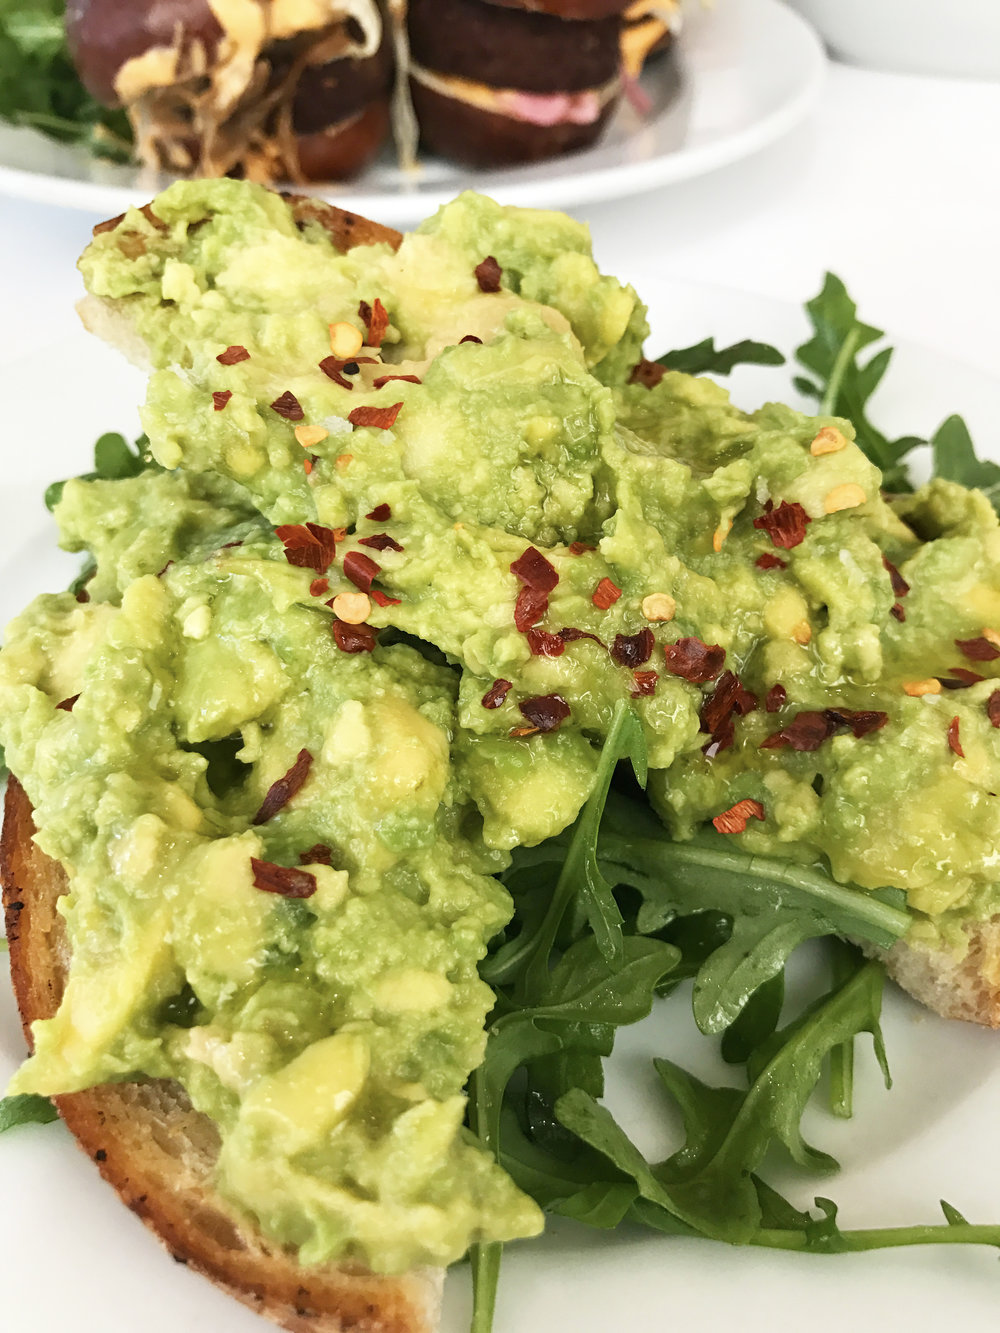 Avocado Toast  with red chili flakes, lemon, olive oil, and maldon